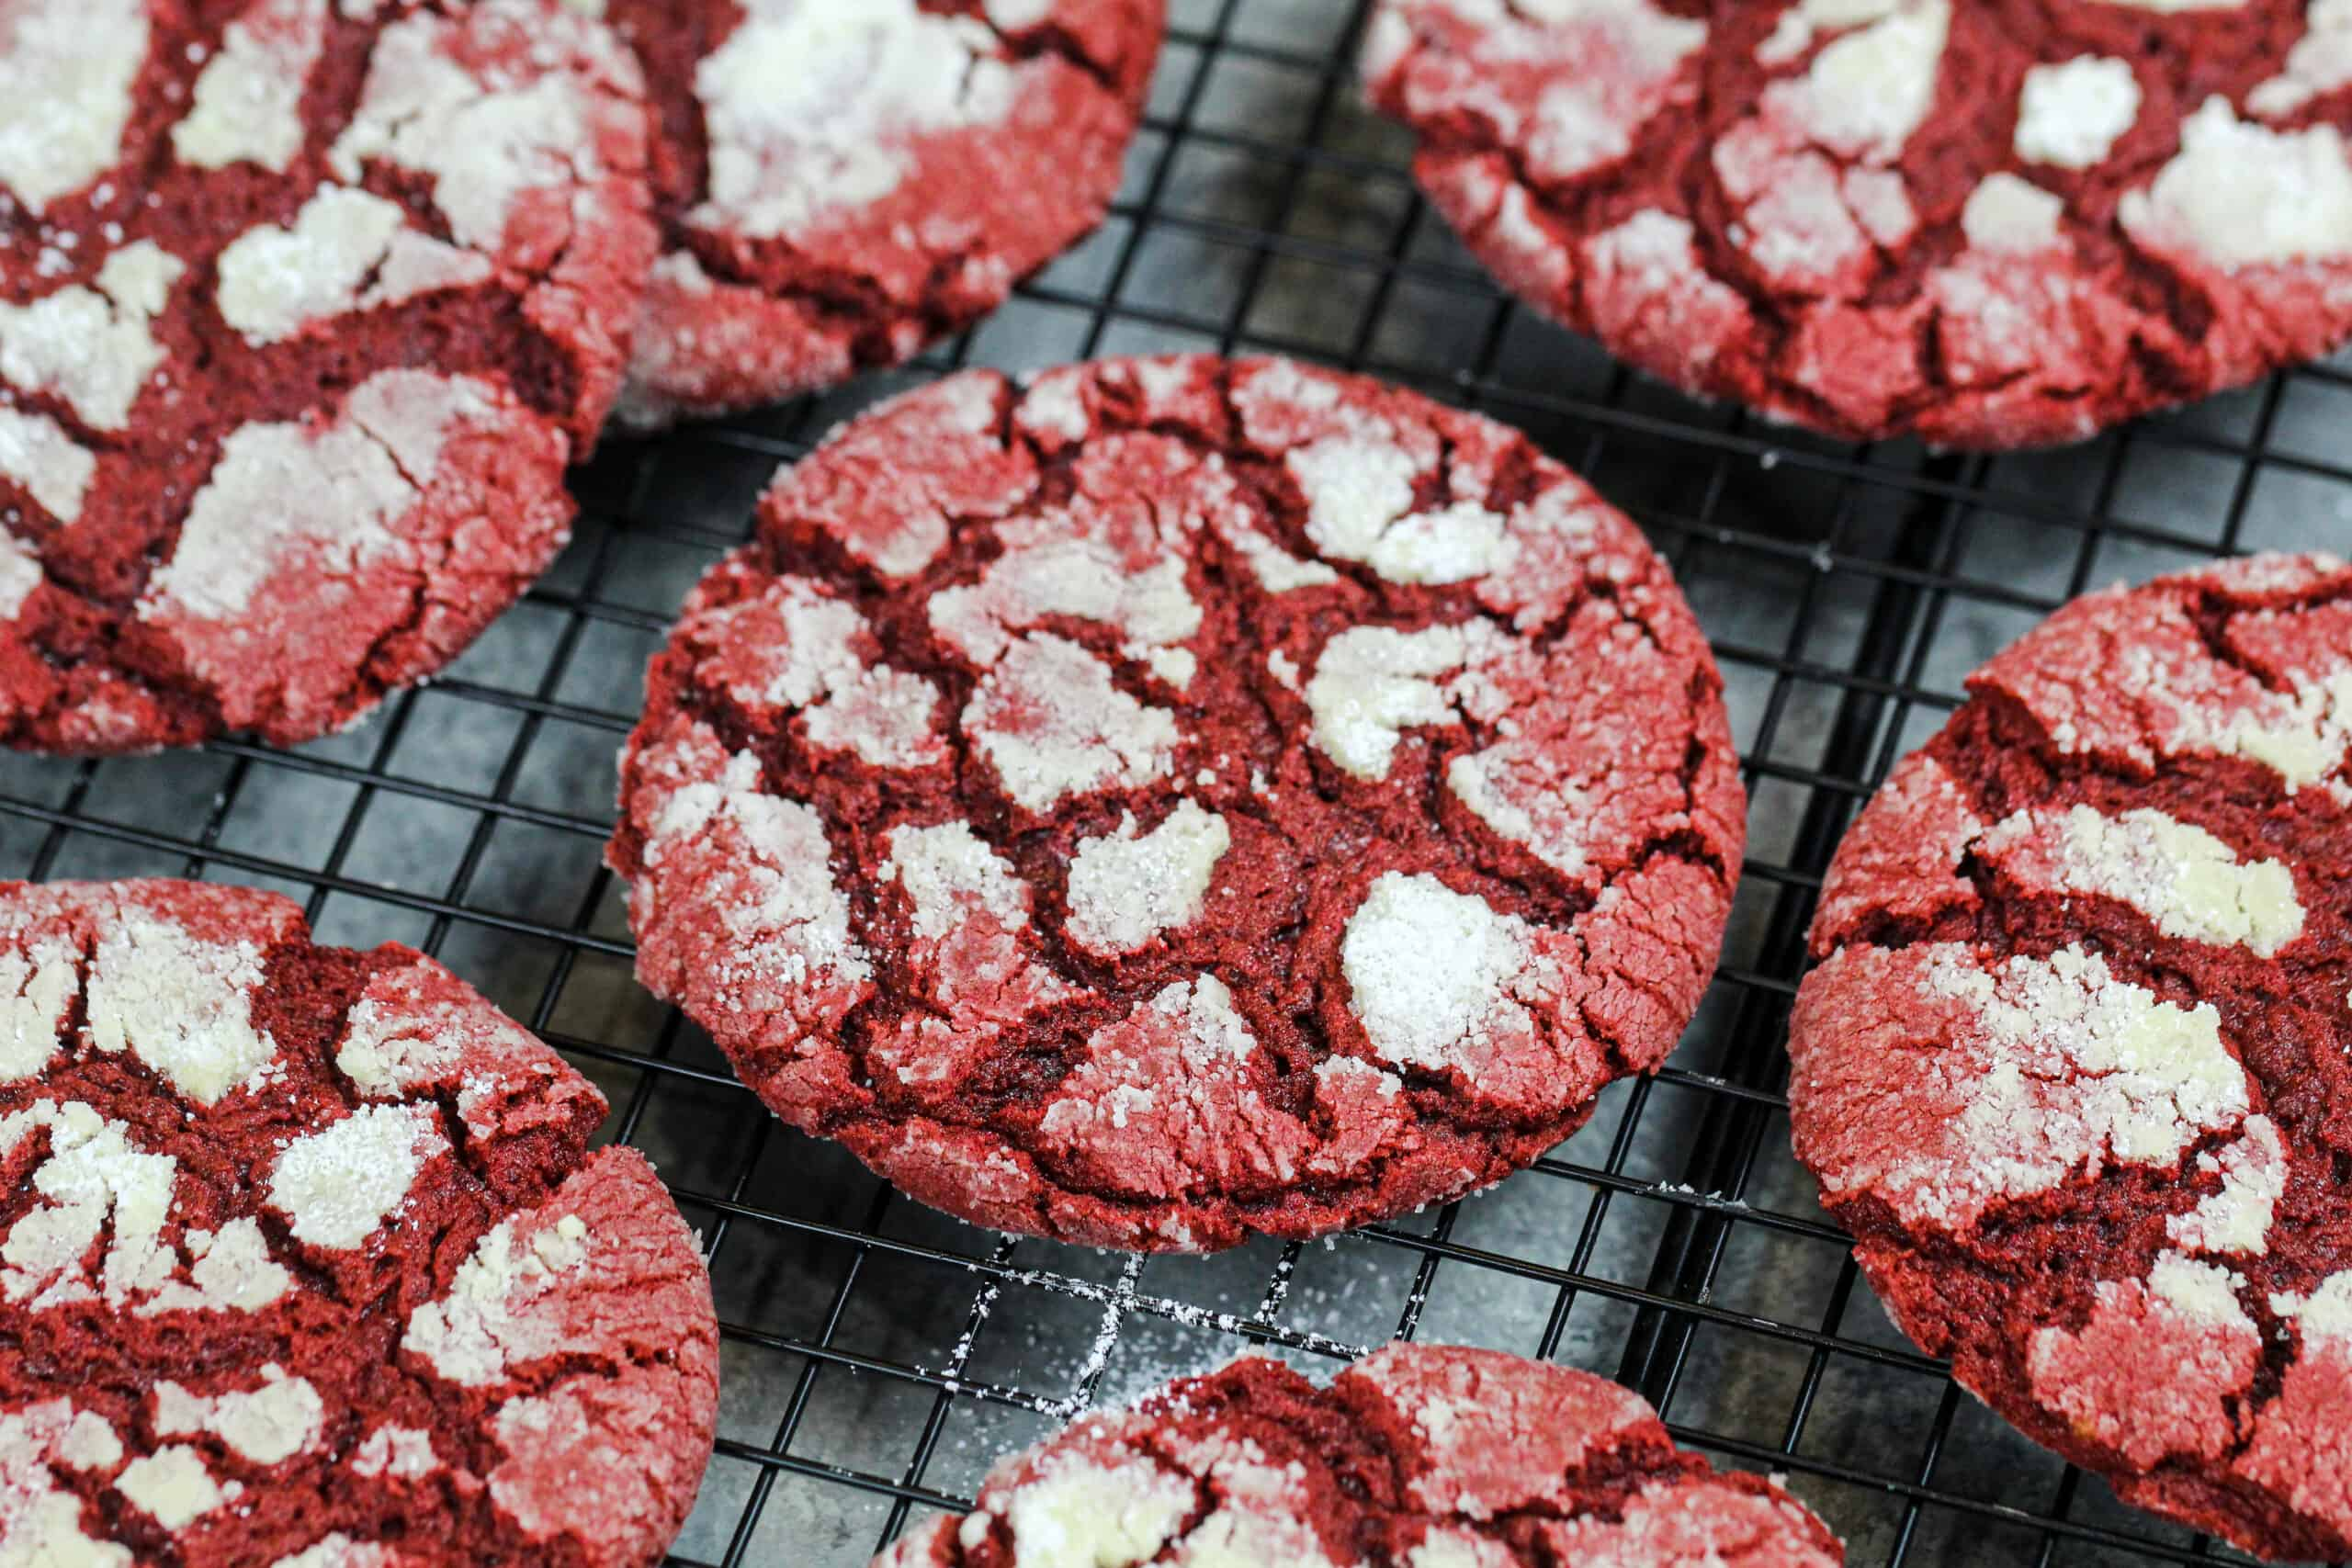 image of red velvet crinkle cookies made from scratch cooling on a wire rack